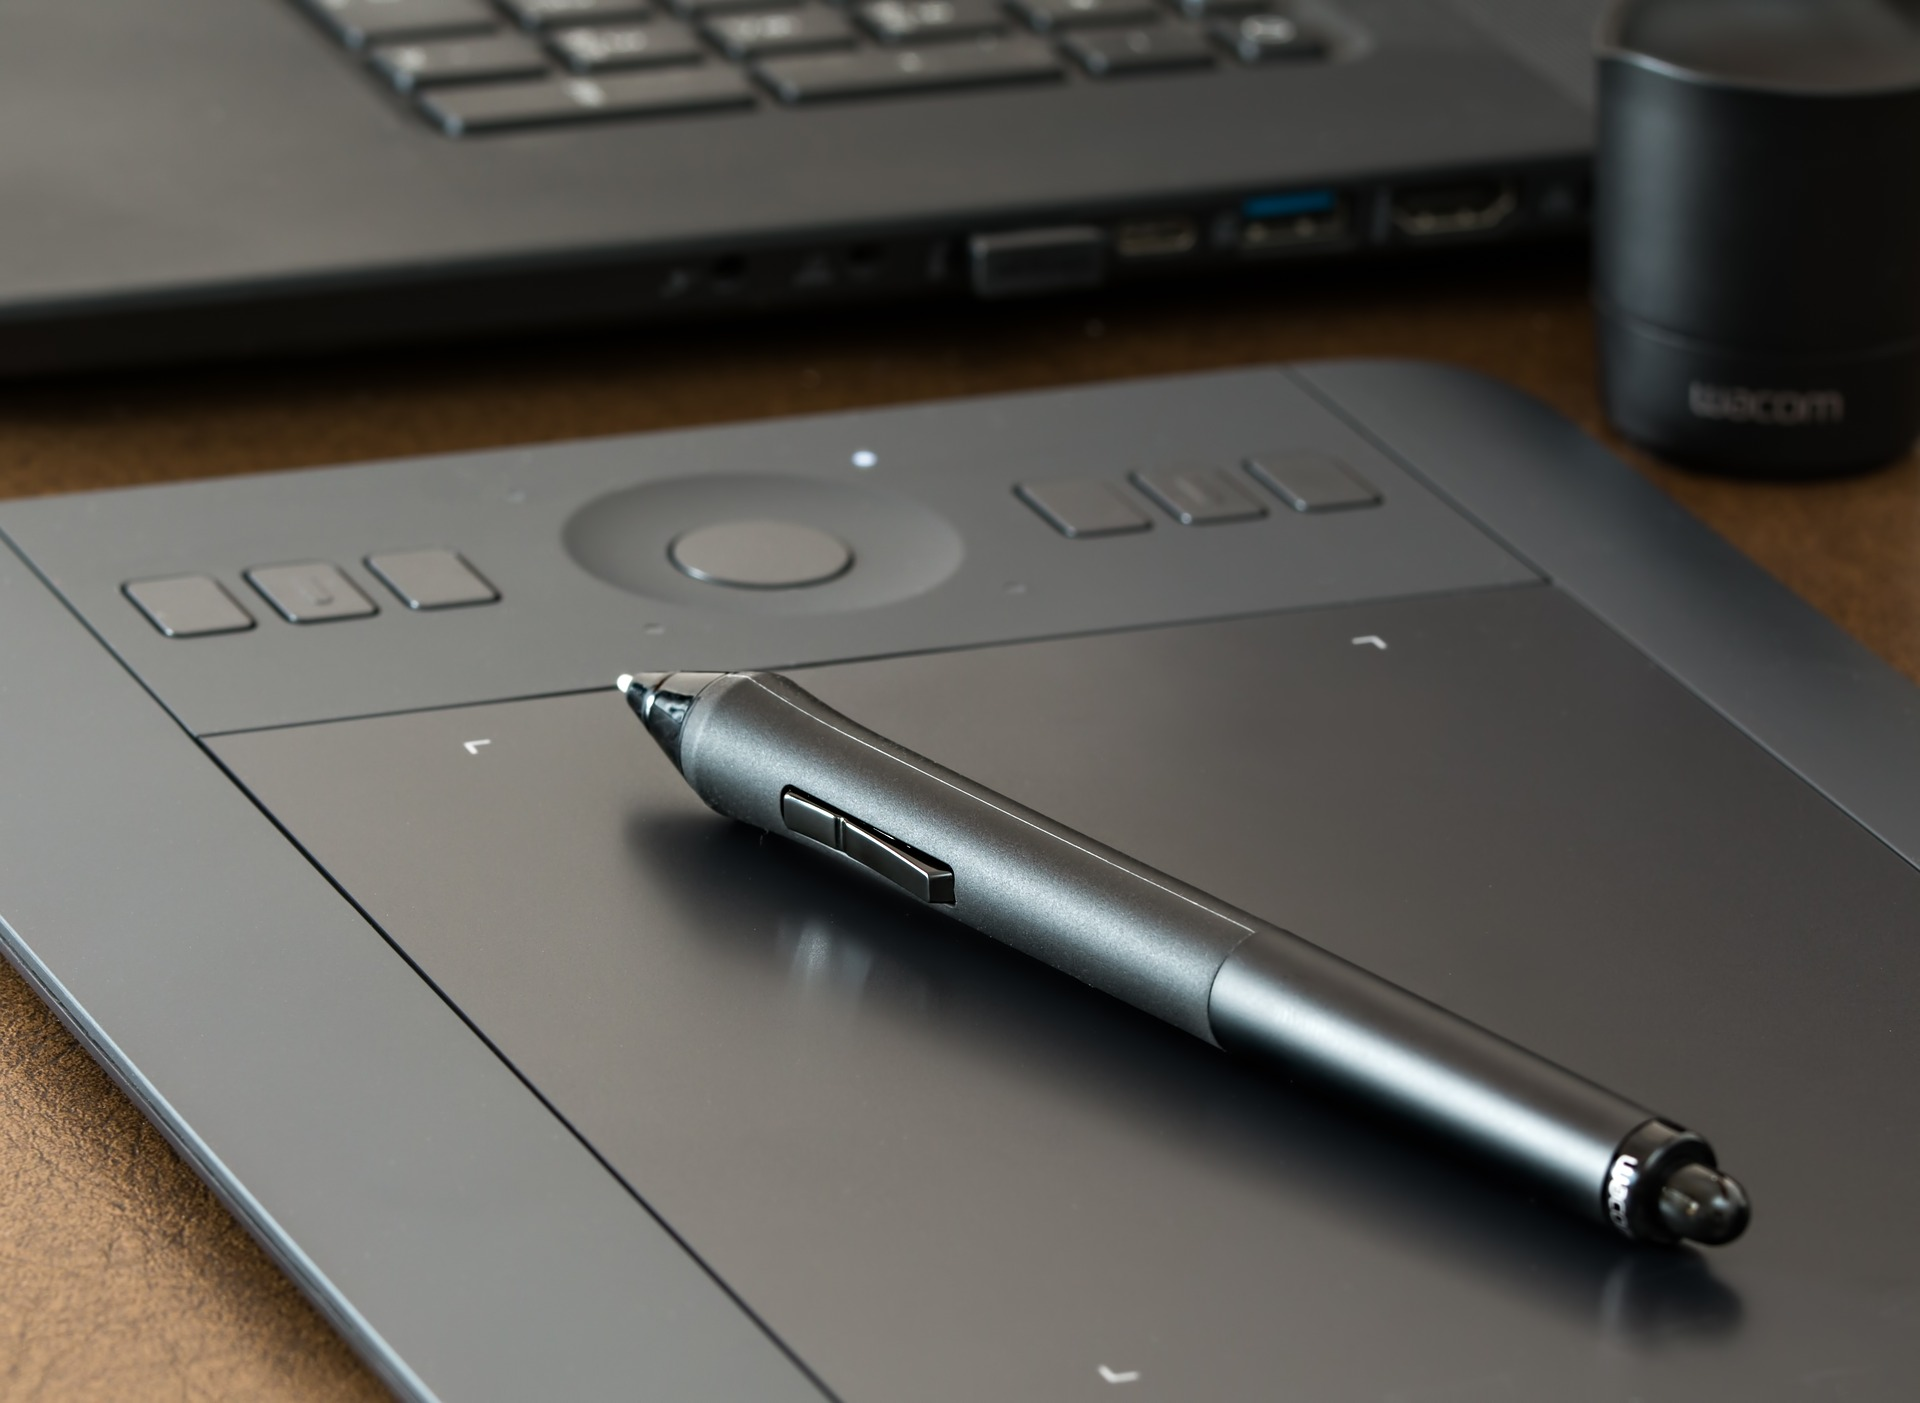 graphics-tablet-1964816_1920